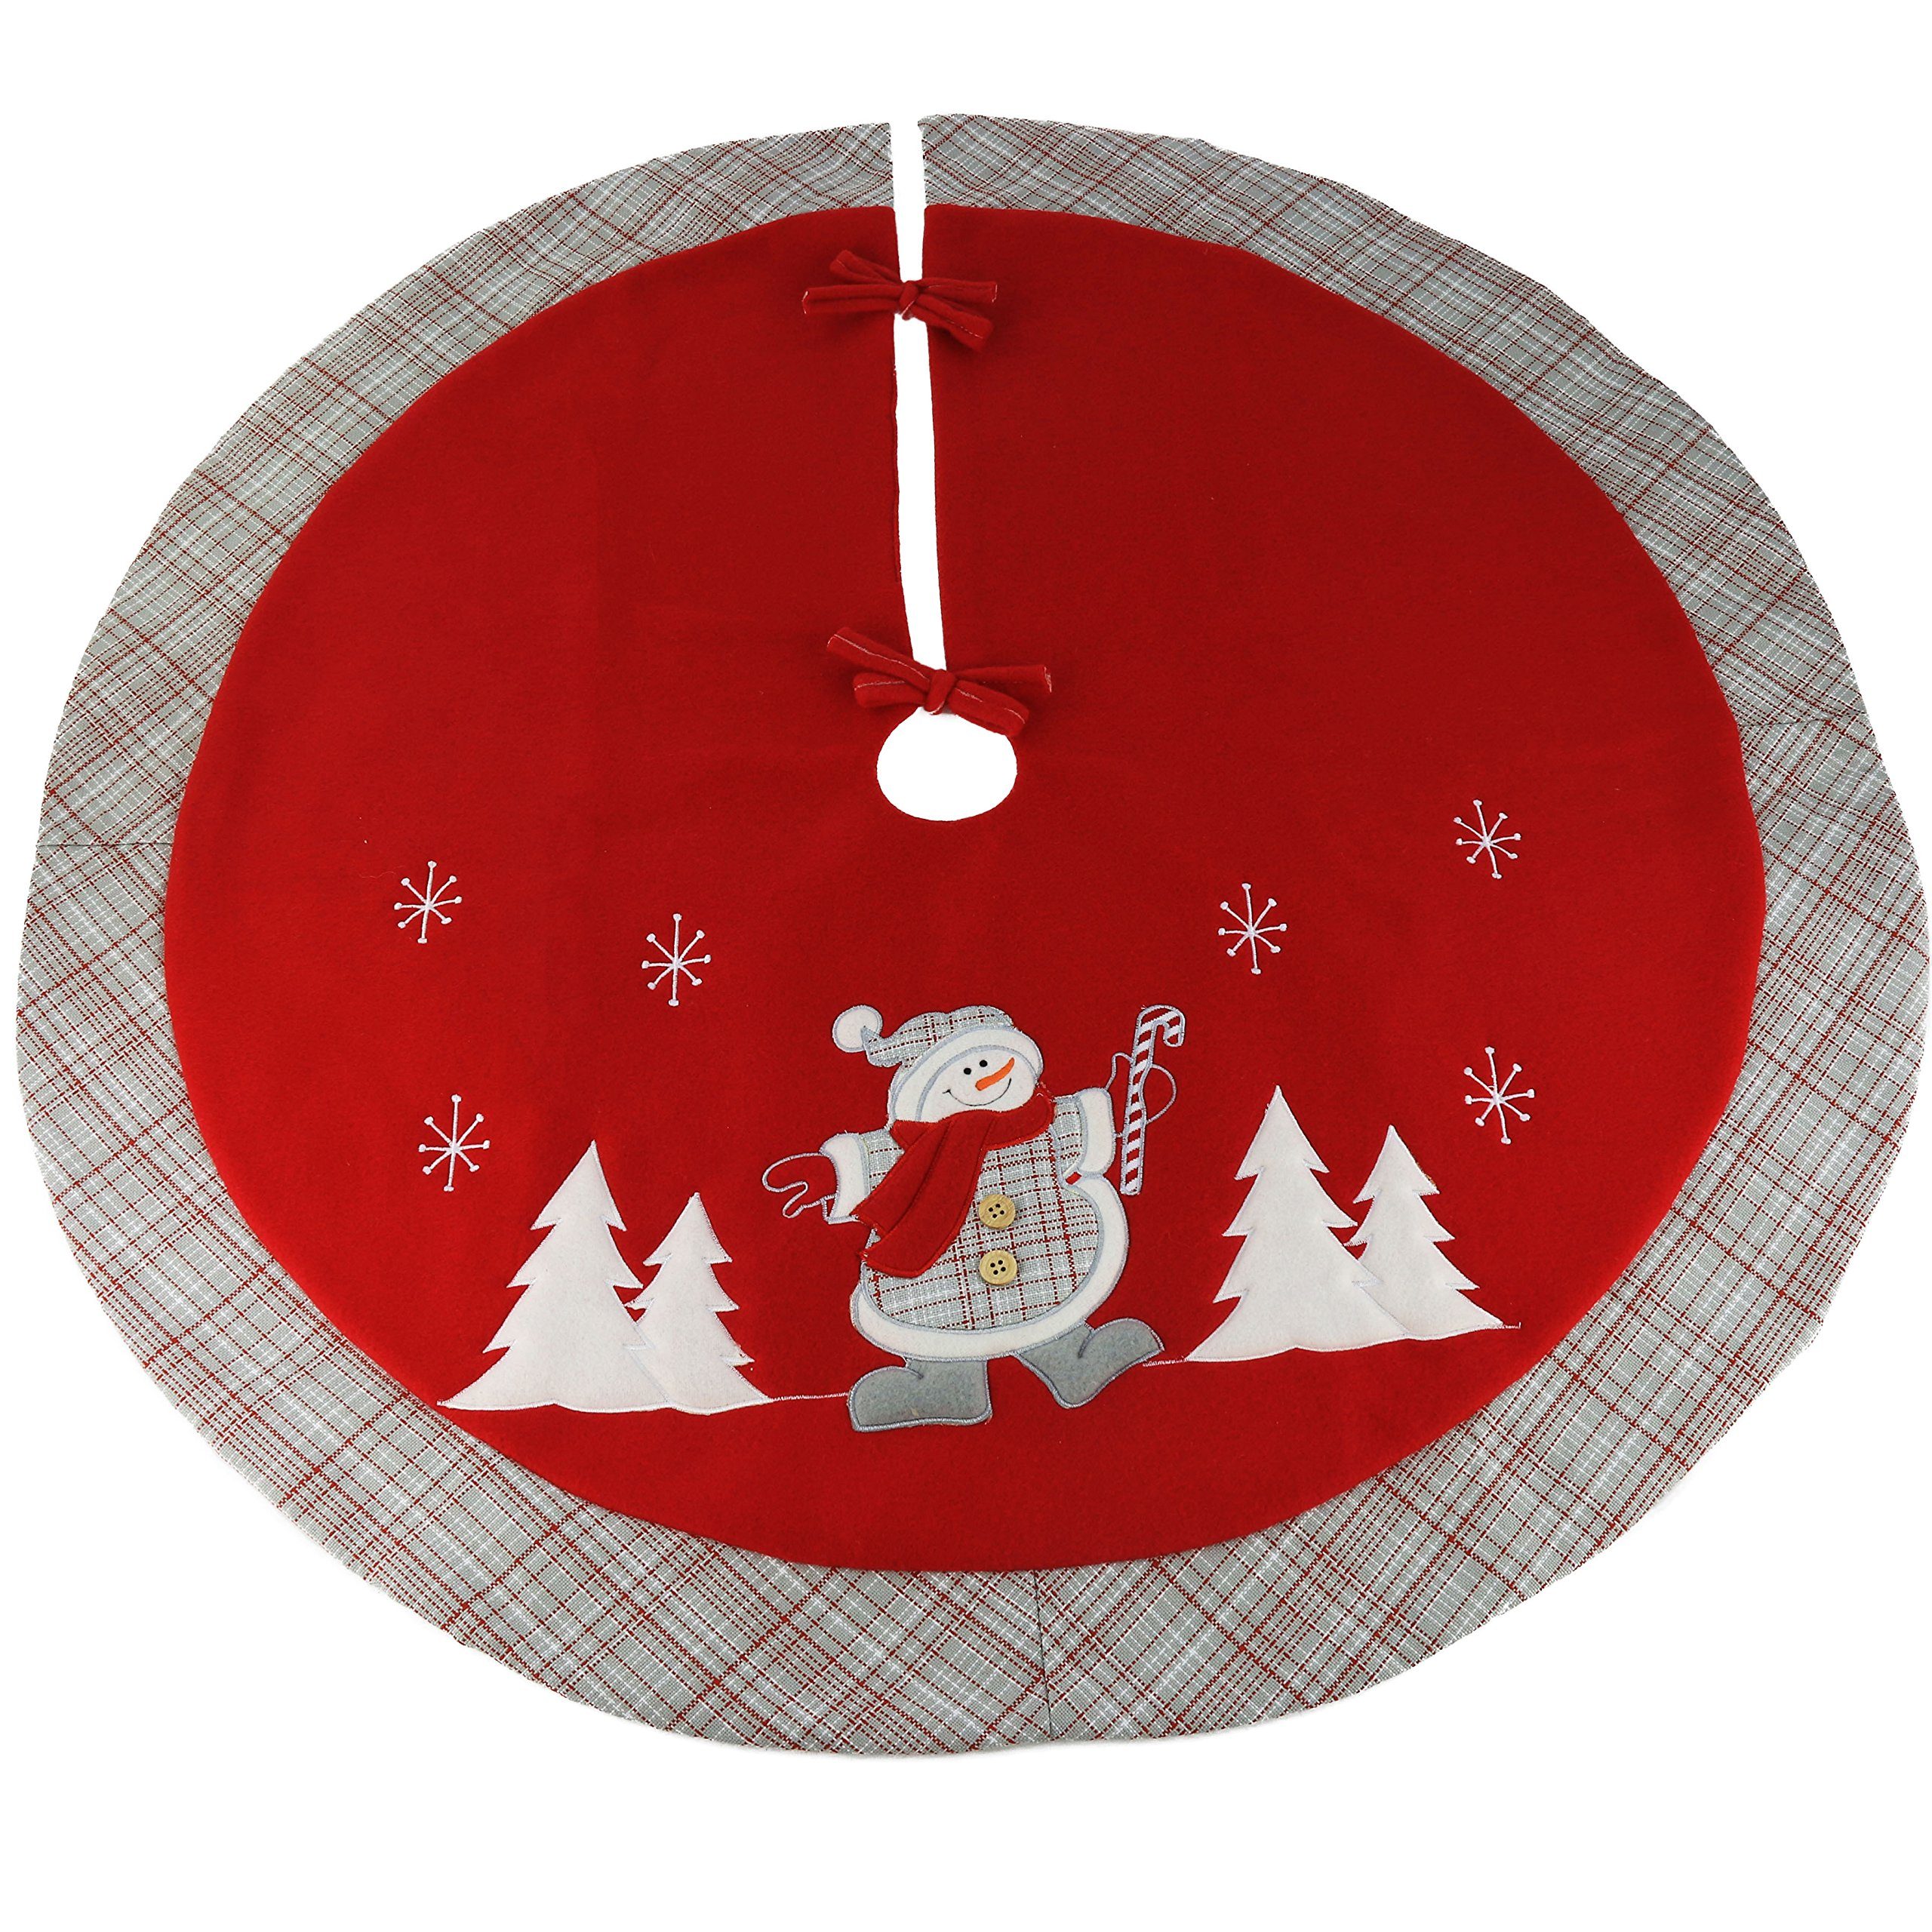 Wewill 35'' Luxury Thick Christmas Tree Skirt Embroidered Snowman with Tartan Design Home Ornament(Style 5)